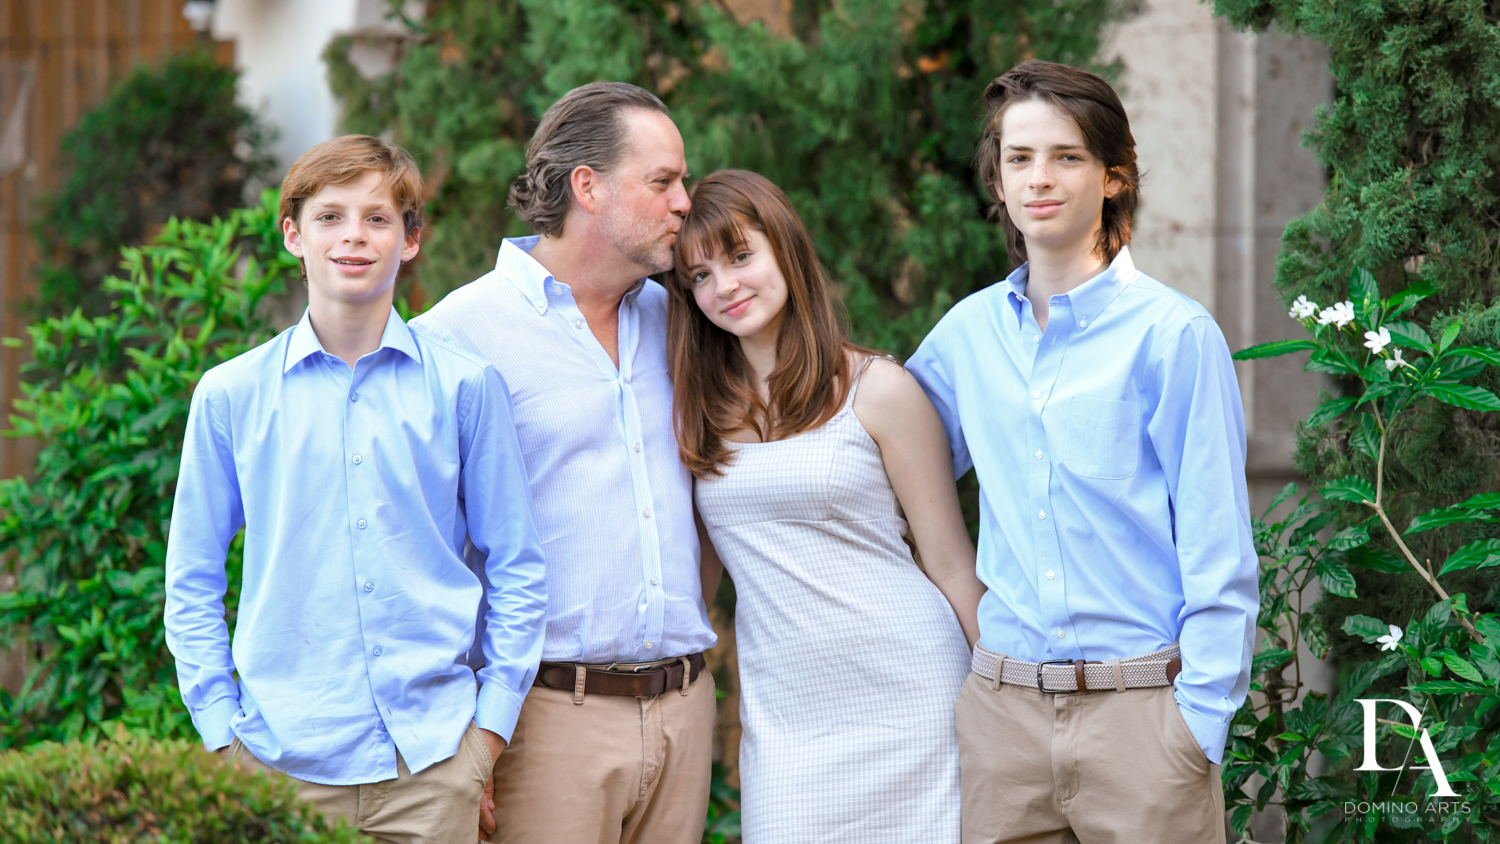 Family at Bat Mitzvah Pre Session in Miami Beach by Domino Arts Photography